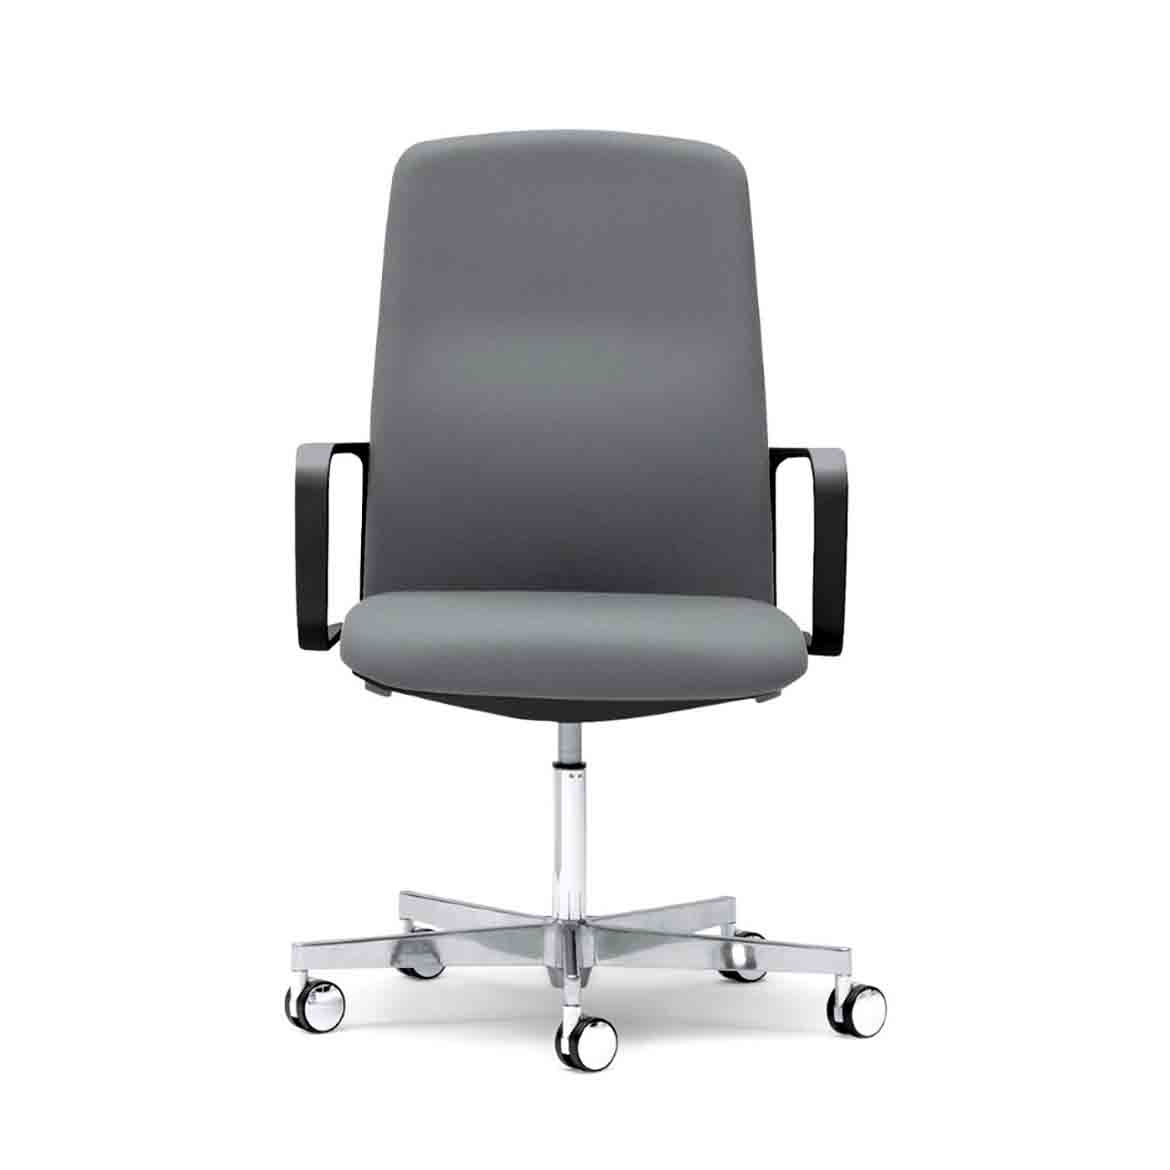 Ergonomic office chair with die-cast aluminium, hight adjustable base. Upholstered seat and die-cast aluminium armrests.